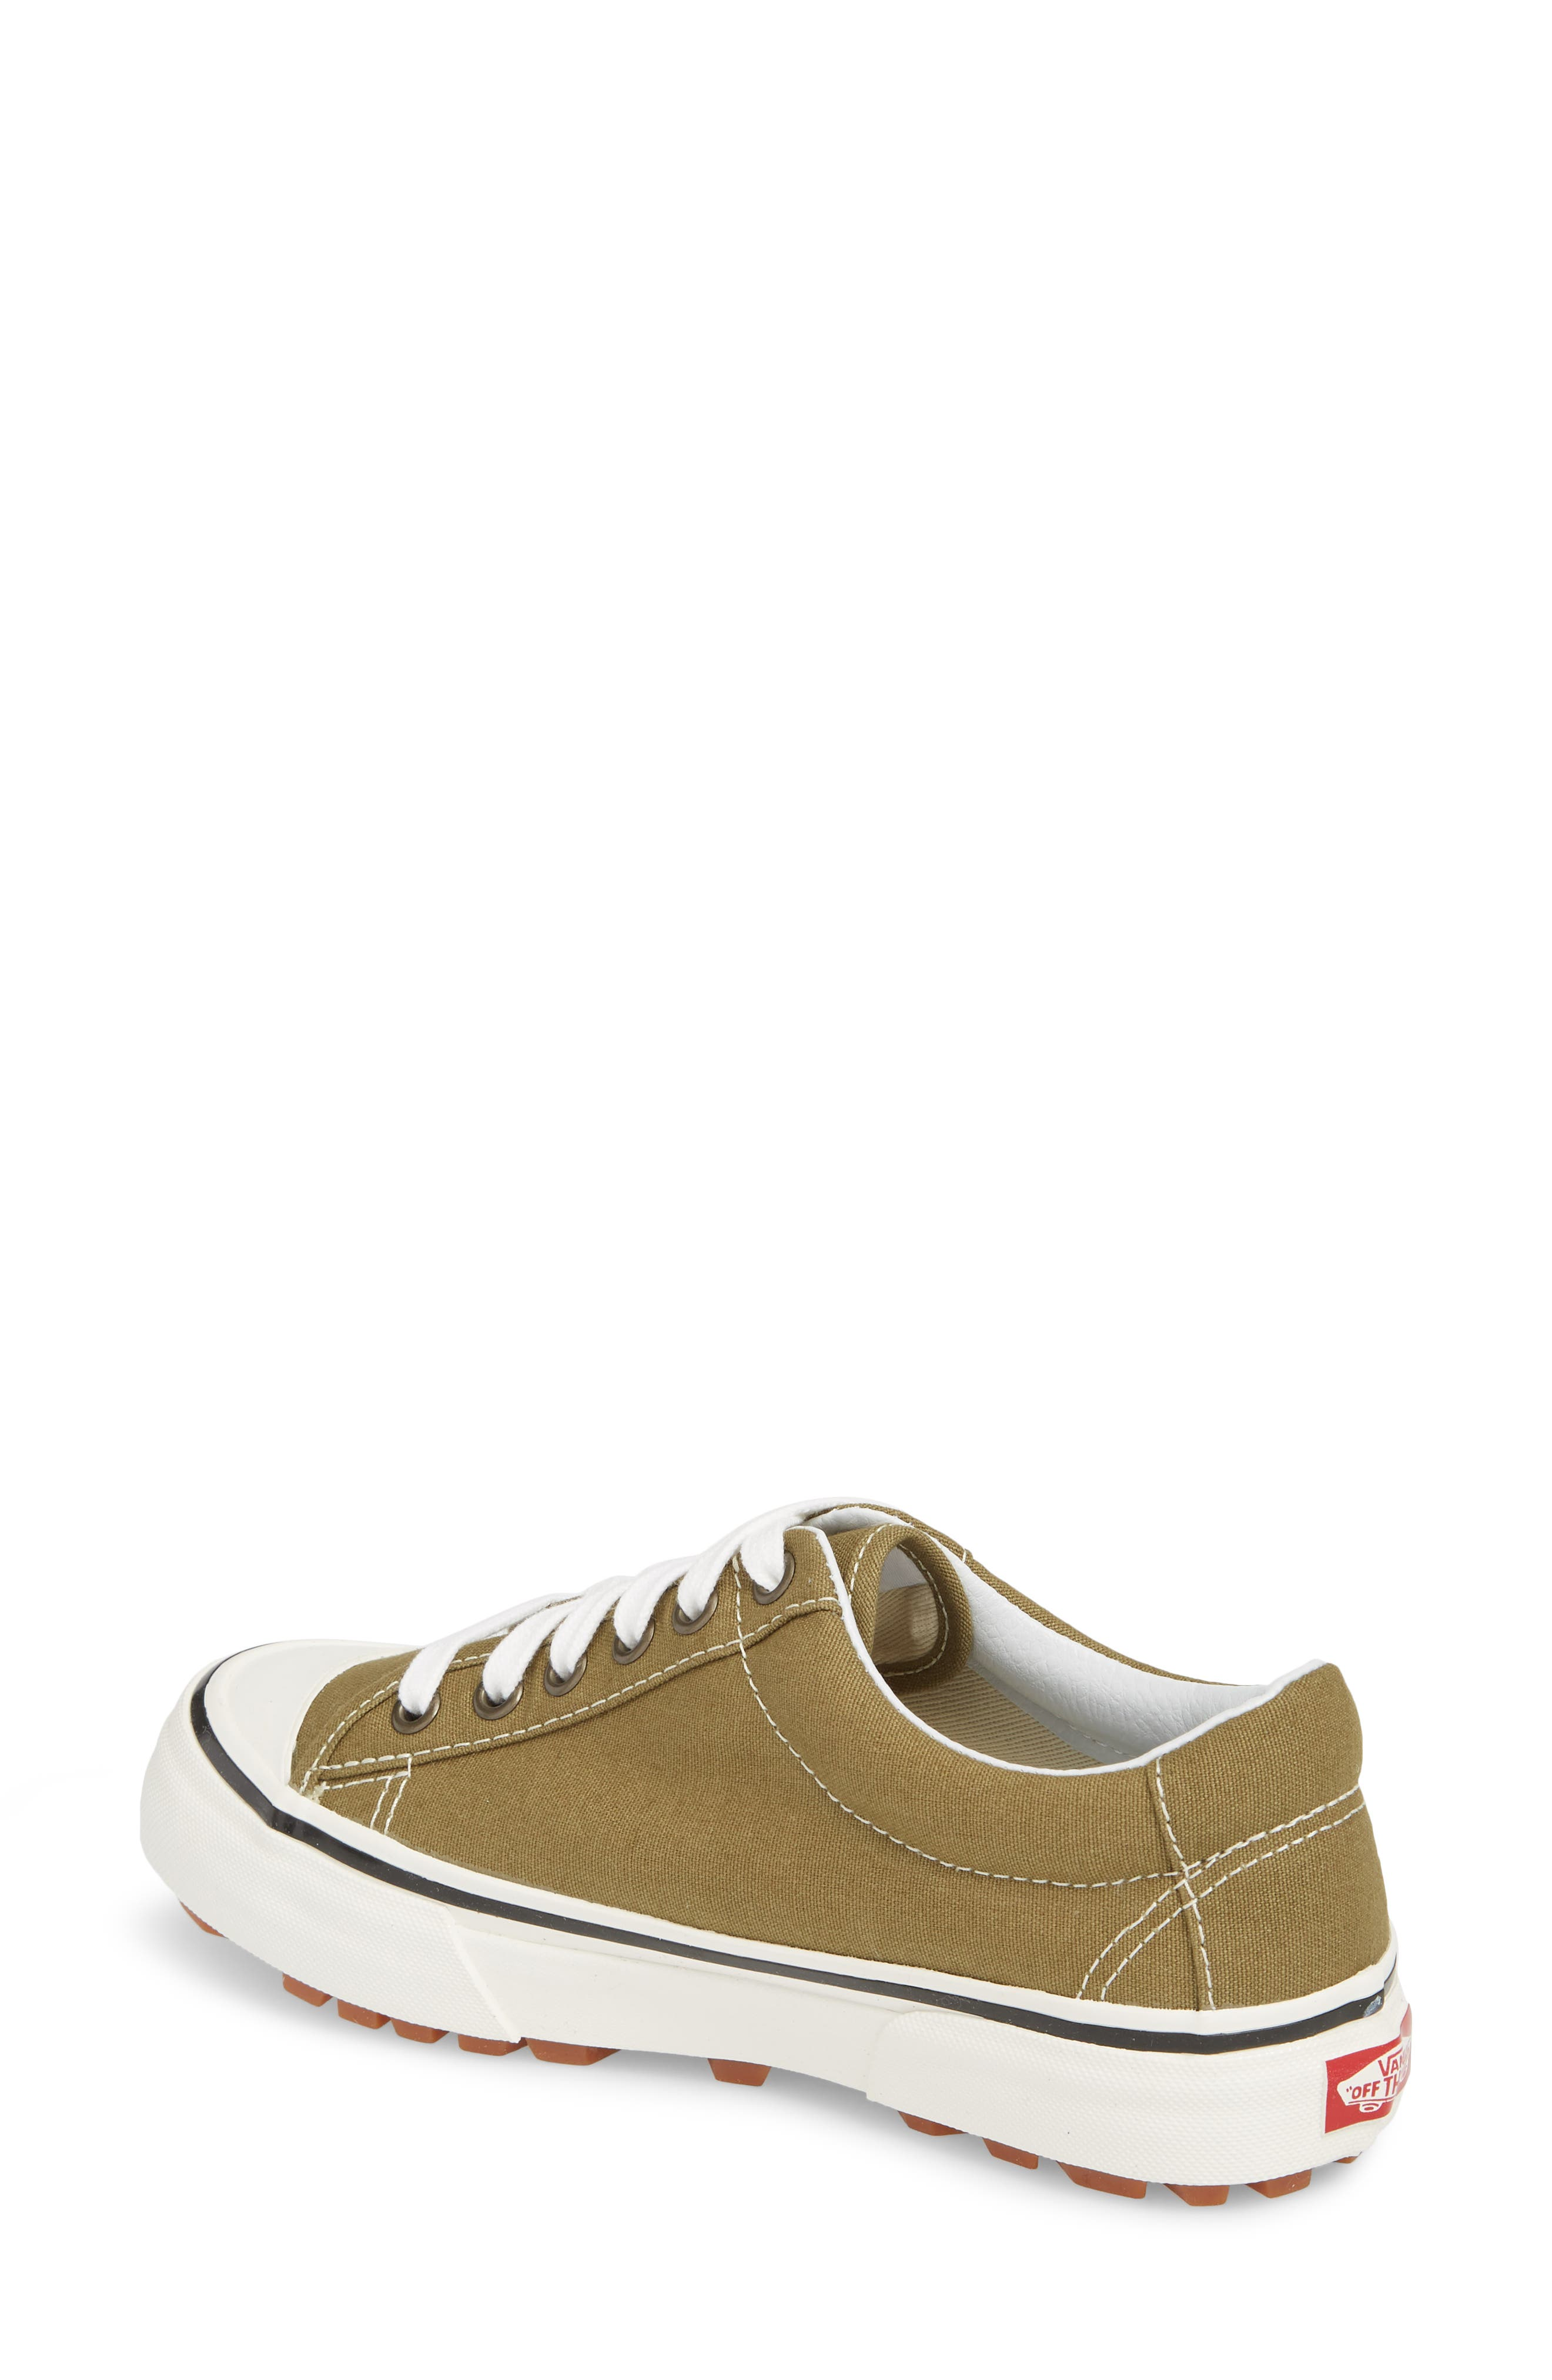 Anaheim Factory Style 29 DX Sneaker,                             Alternate thumbnail 2, color,                             Anaheim Factory Olive